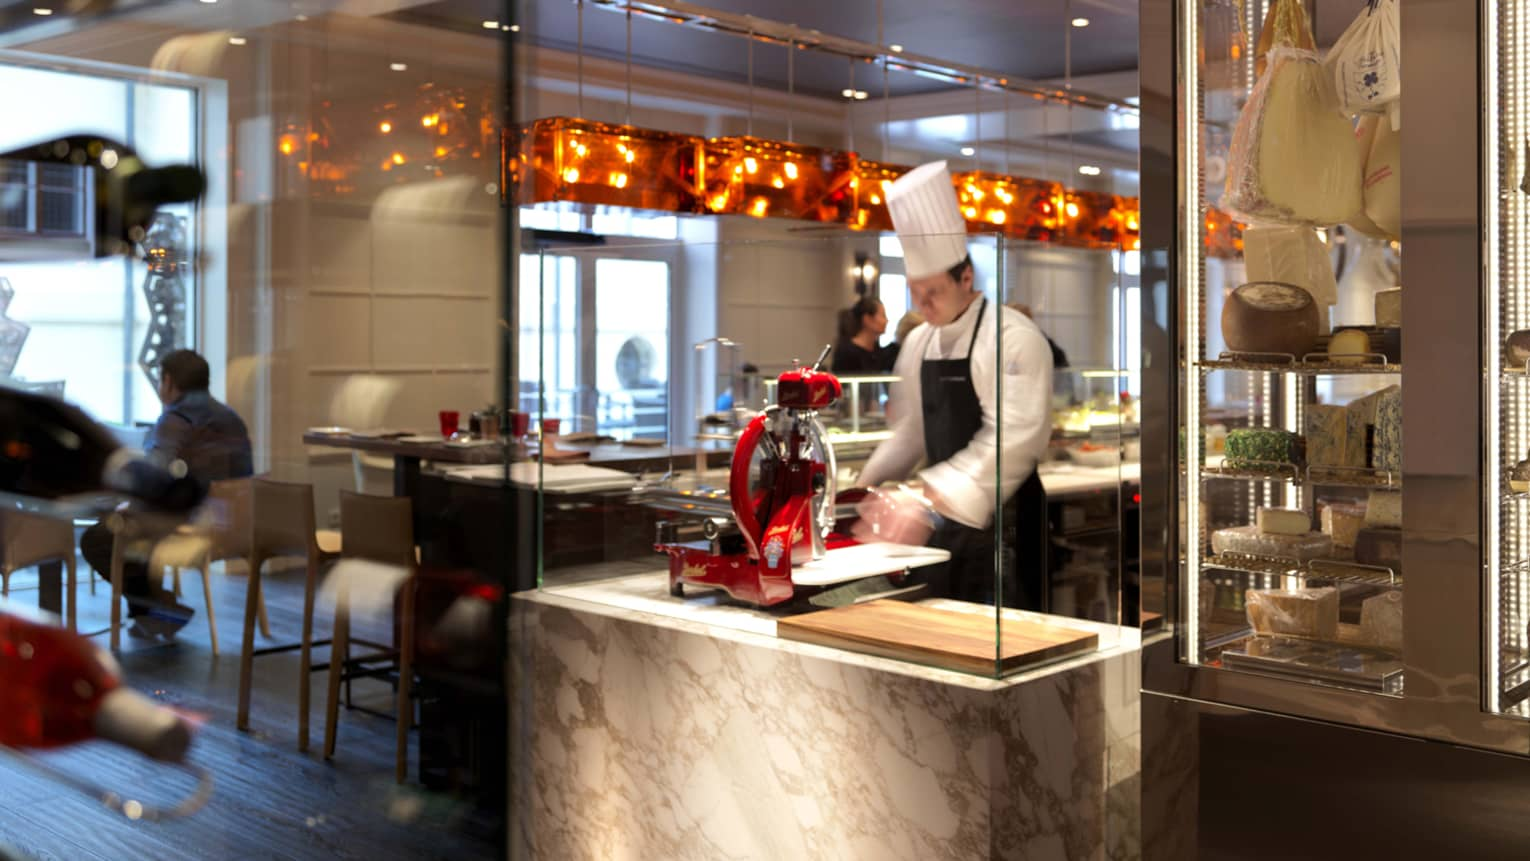 Chef in tall white hat, apron slices food with machine at CottoCrudo cooking station